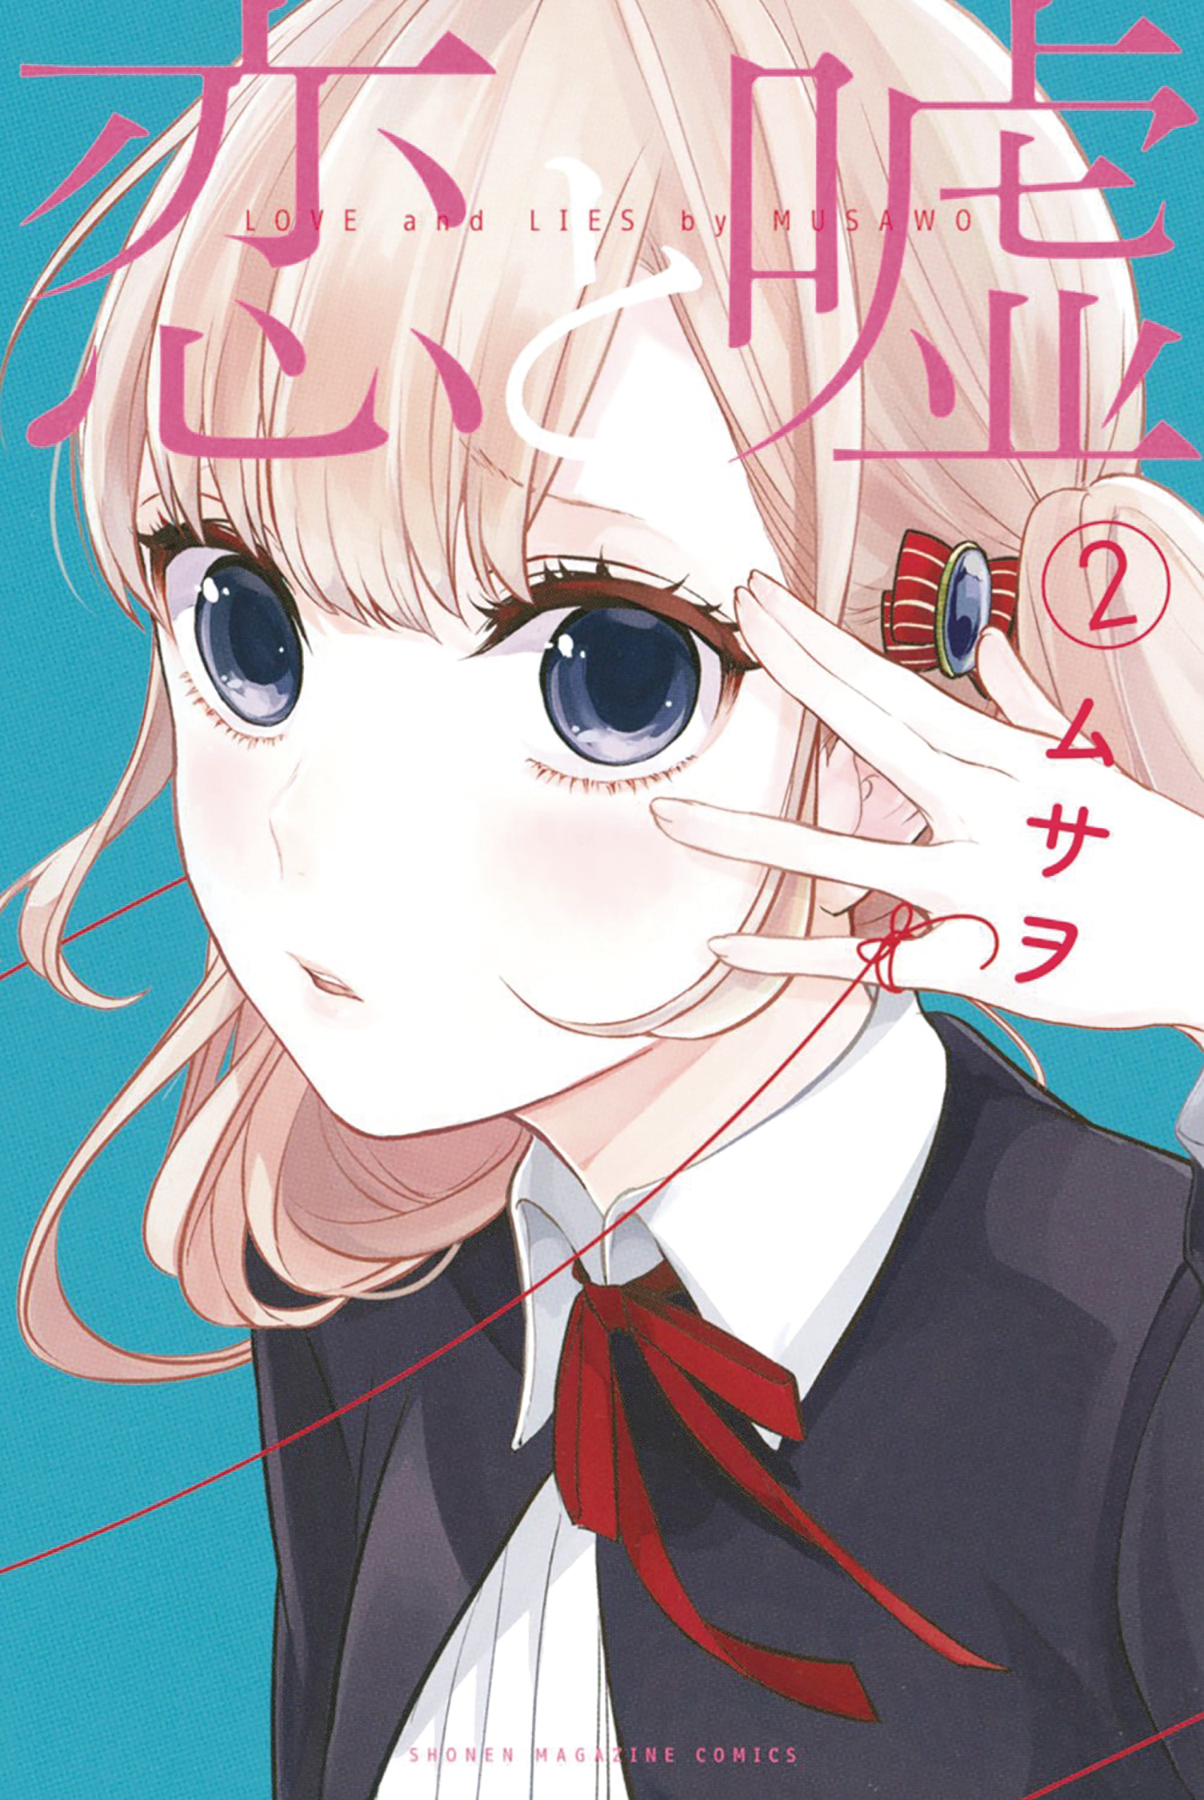 LOVE AND LIES GN VOL 02 (MR)